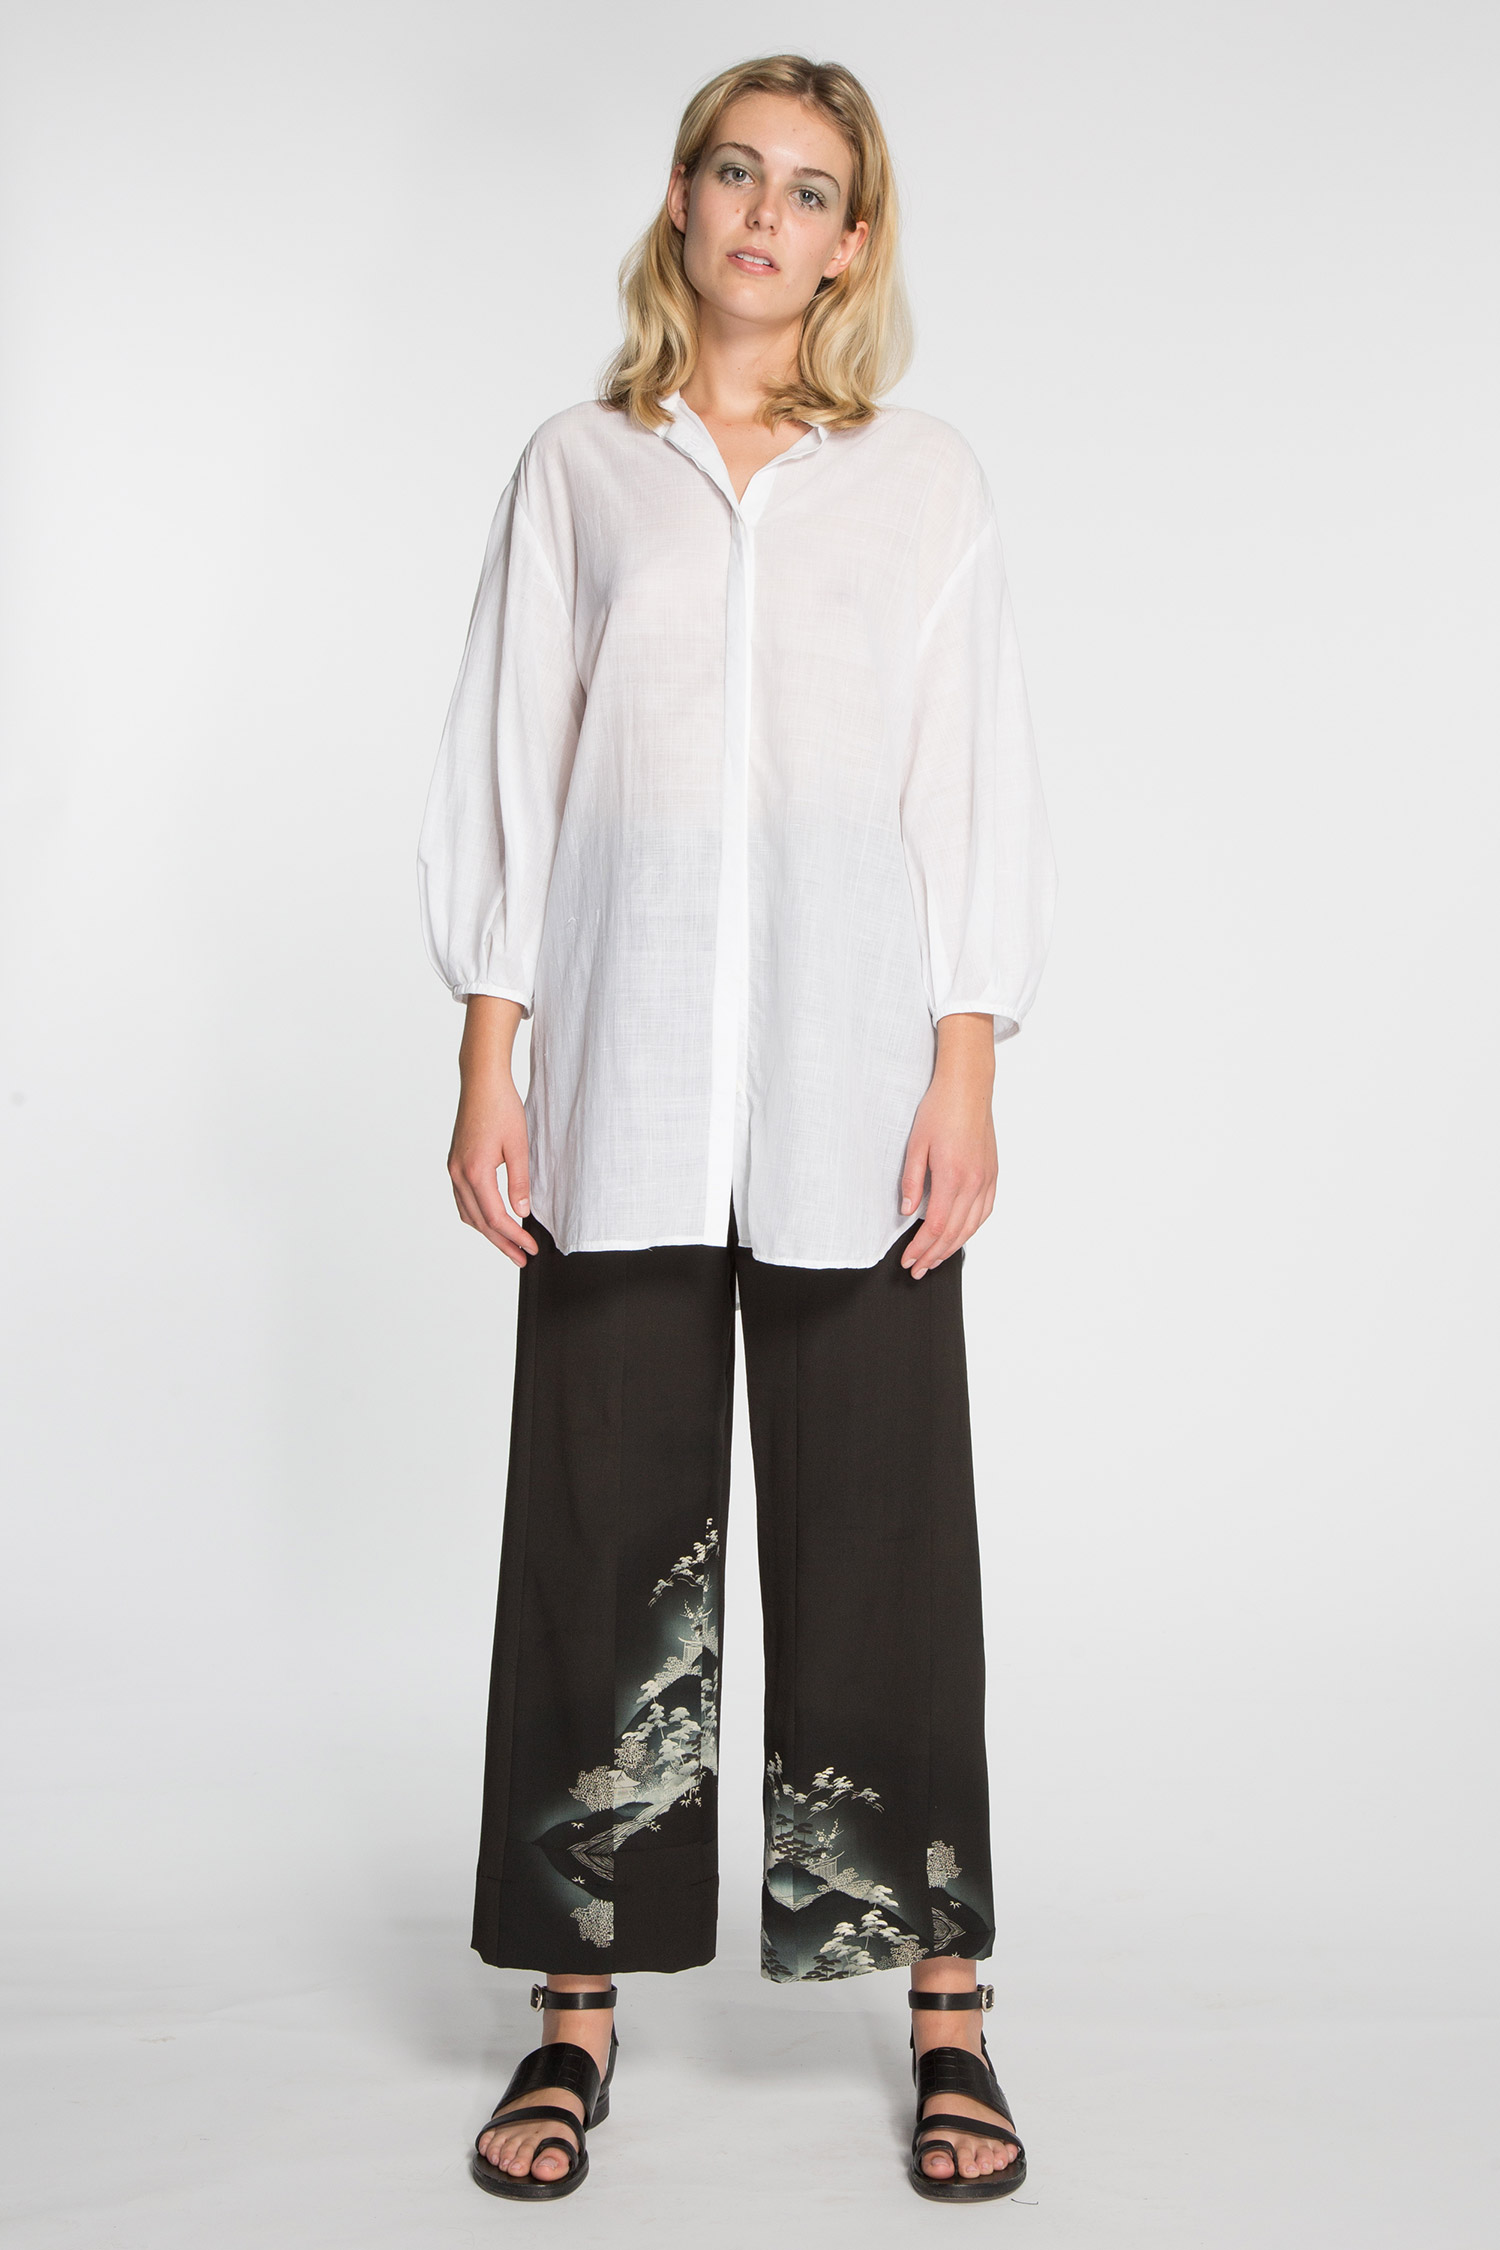 Look2-madison-shirt-panel-pant-8-22.jpg